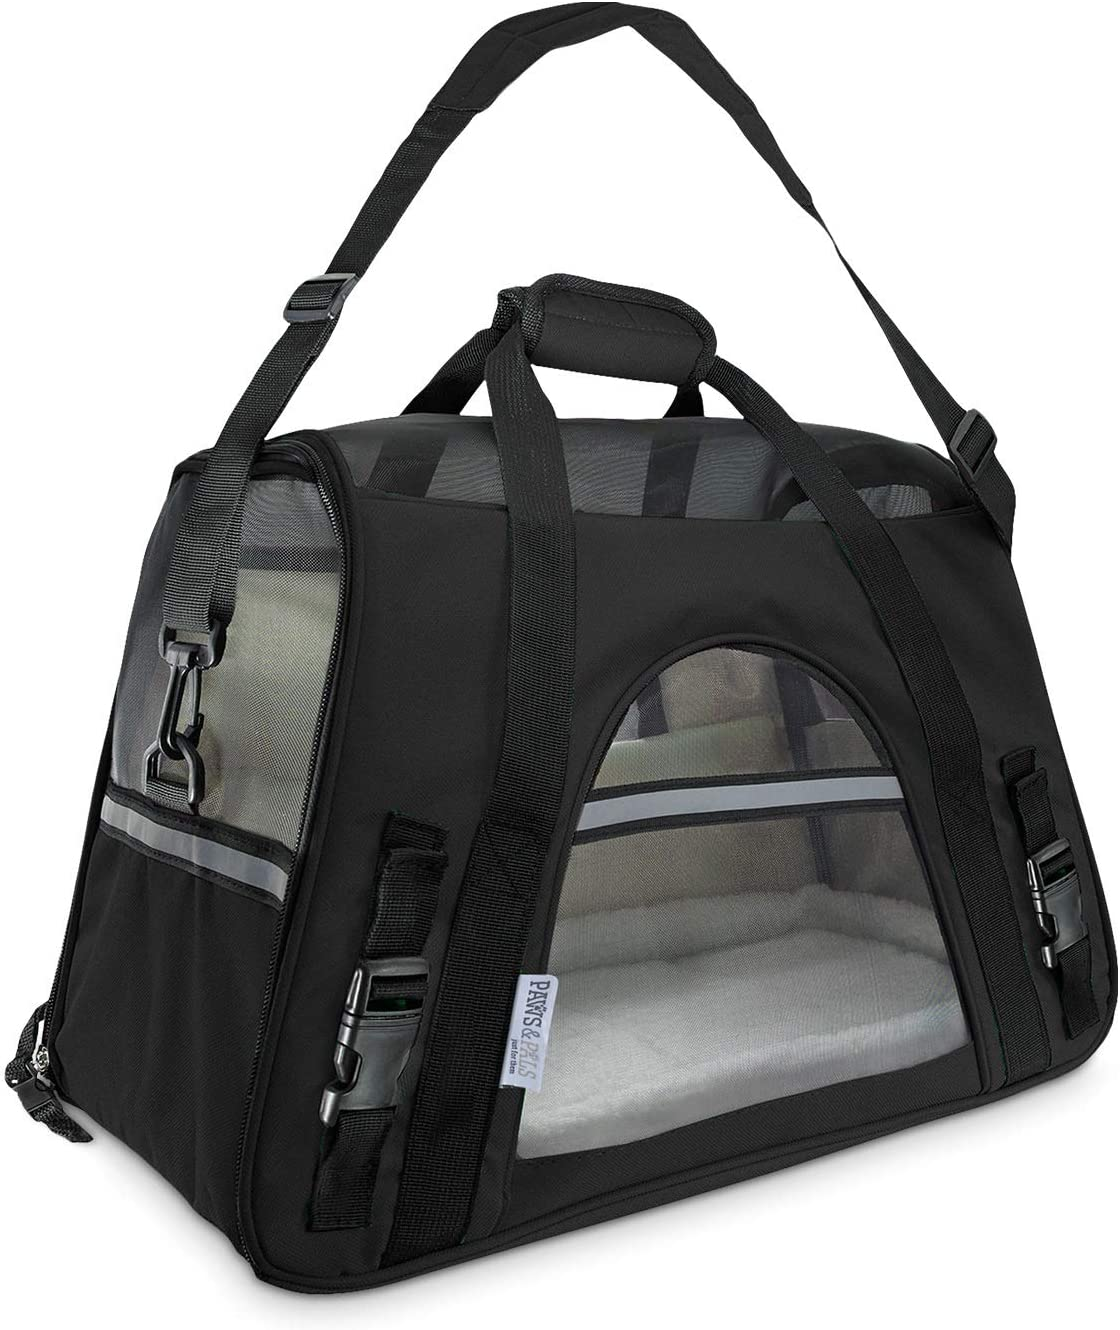 Best Cat Carrier For Car Travel 18